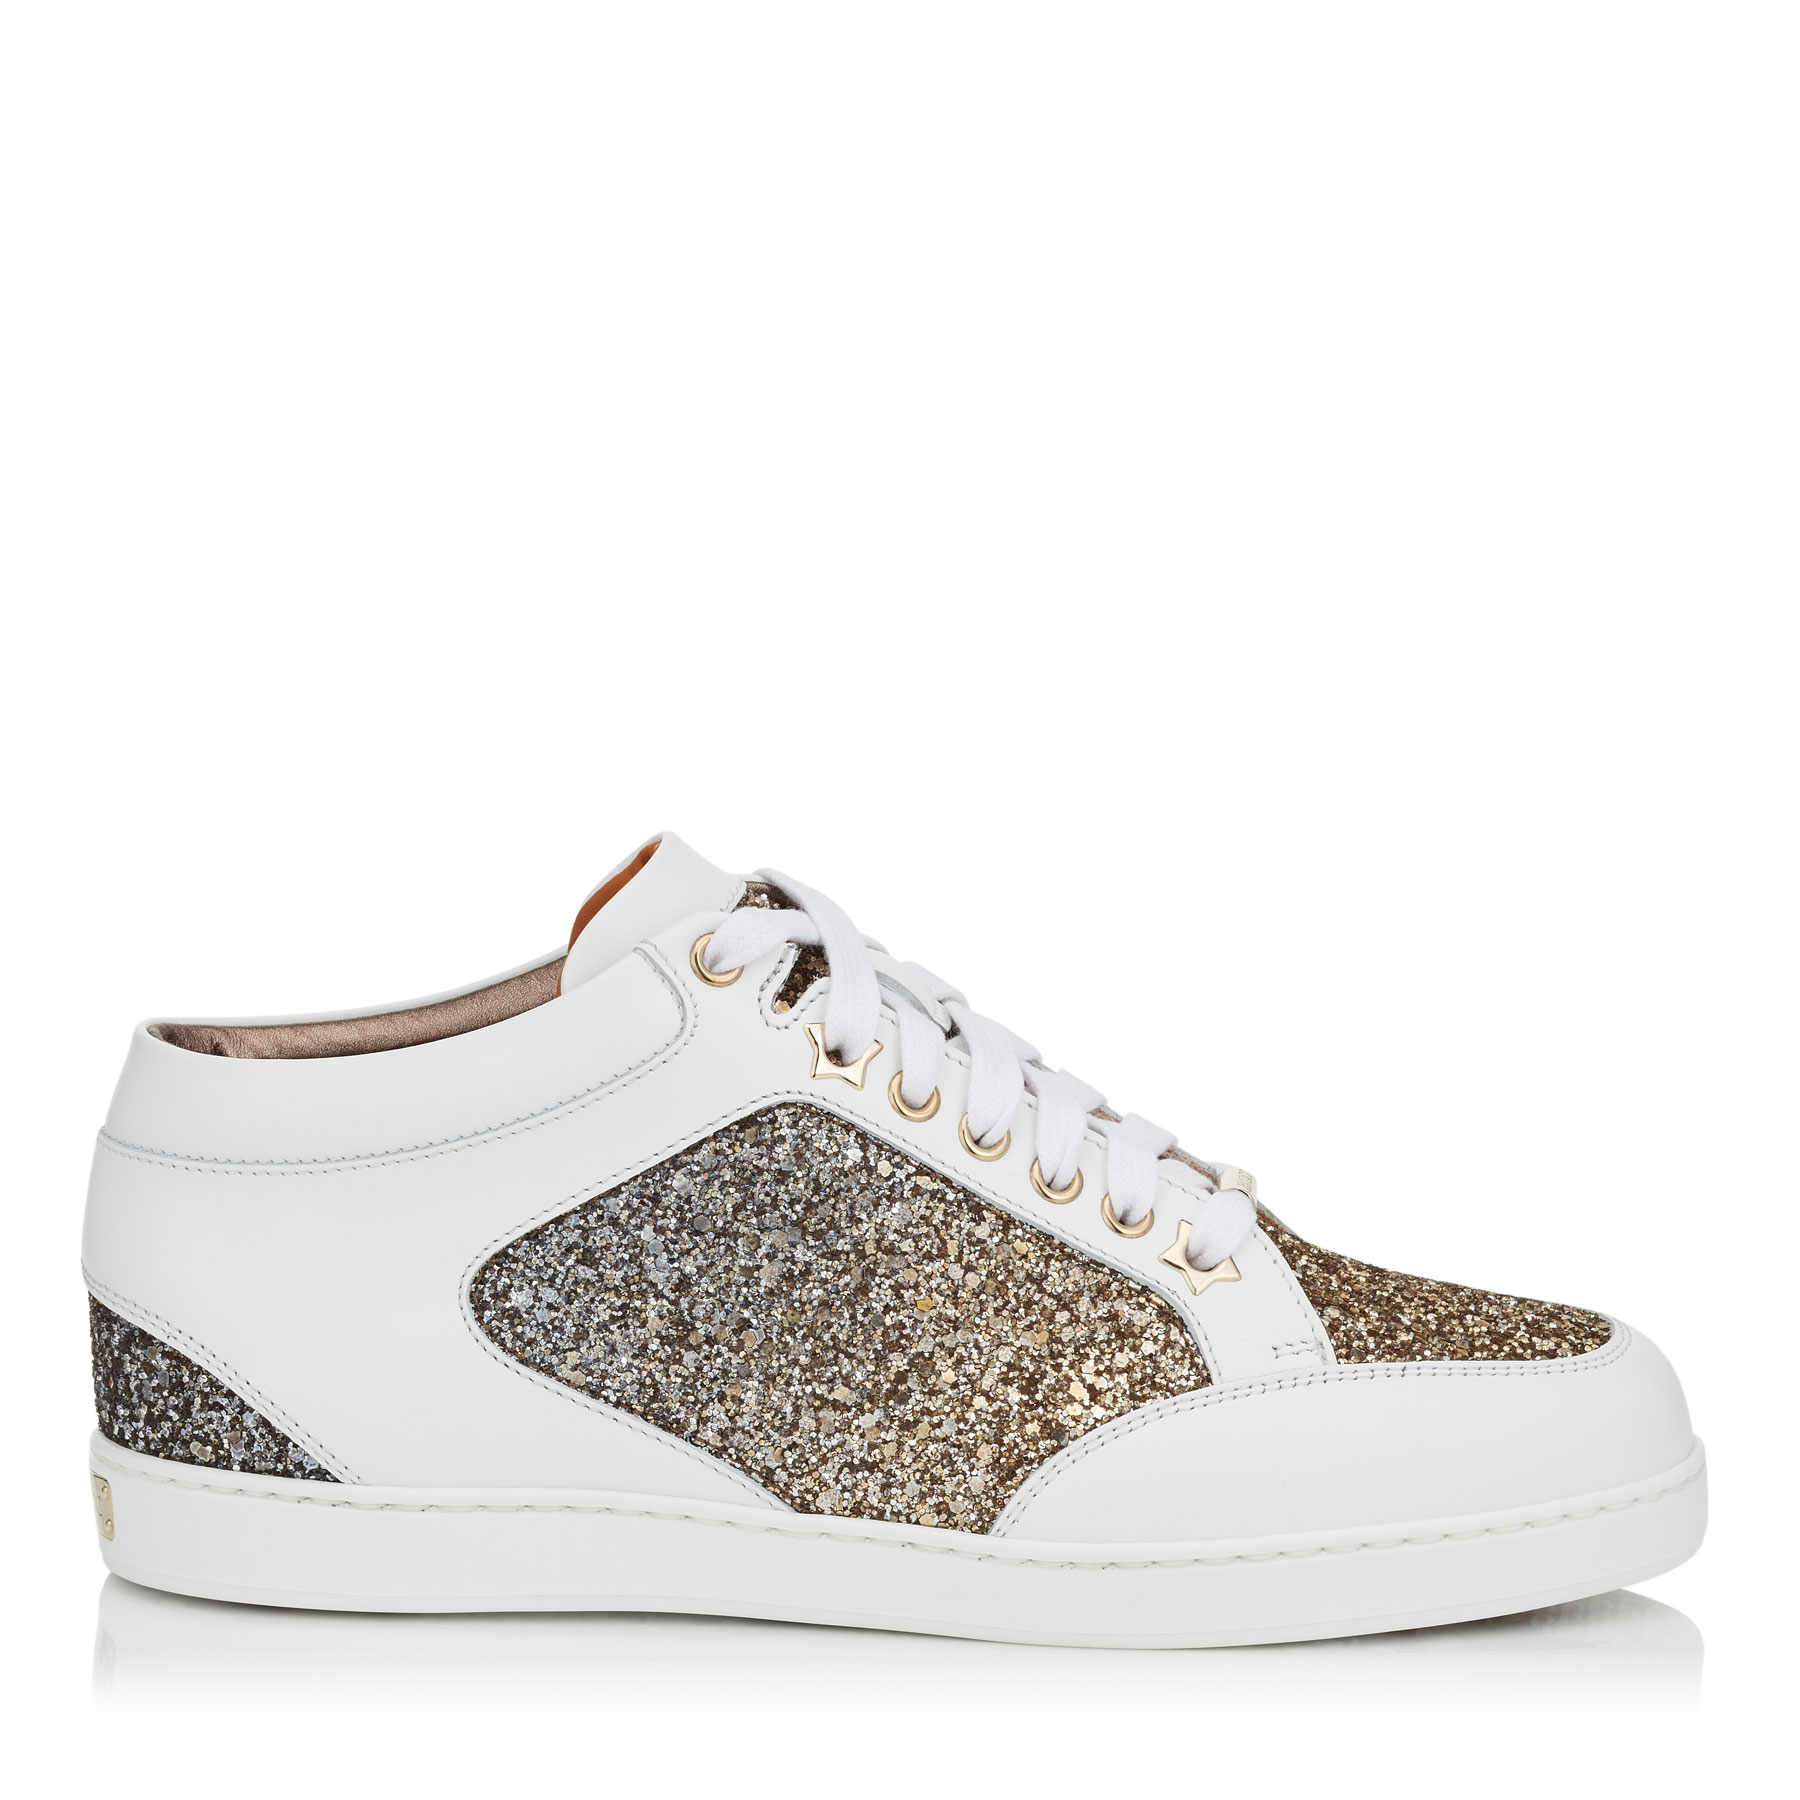 MIAMI Antique Gold and Anthracite Mix Coarse Glitter Dégradé Sneakers